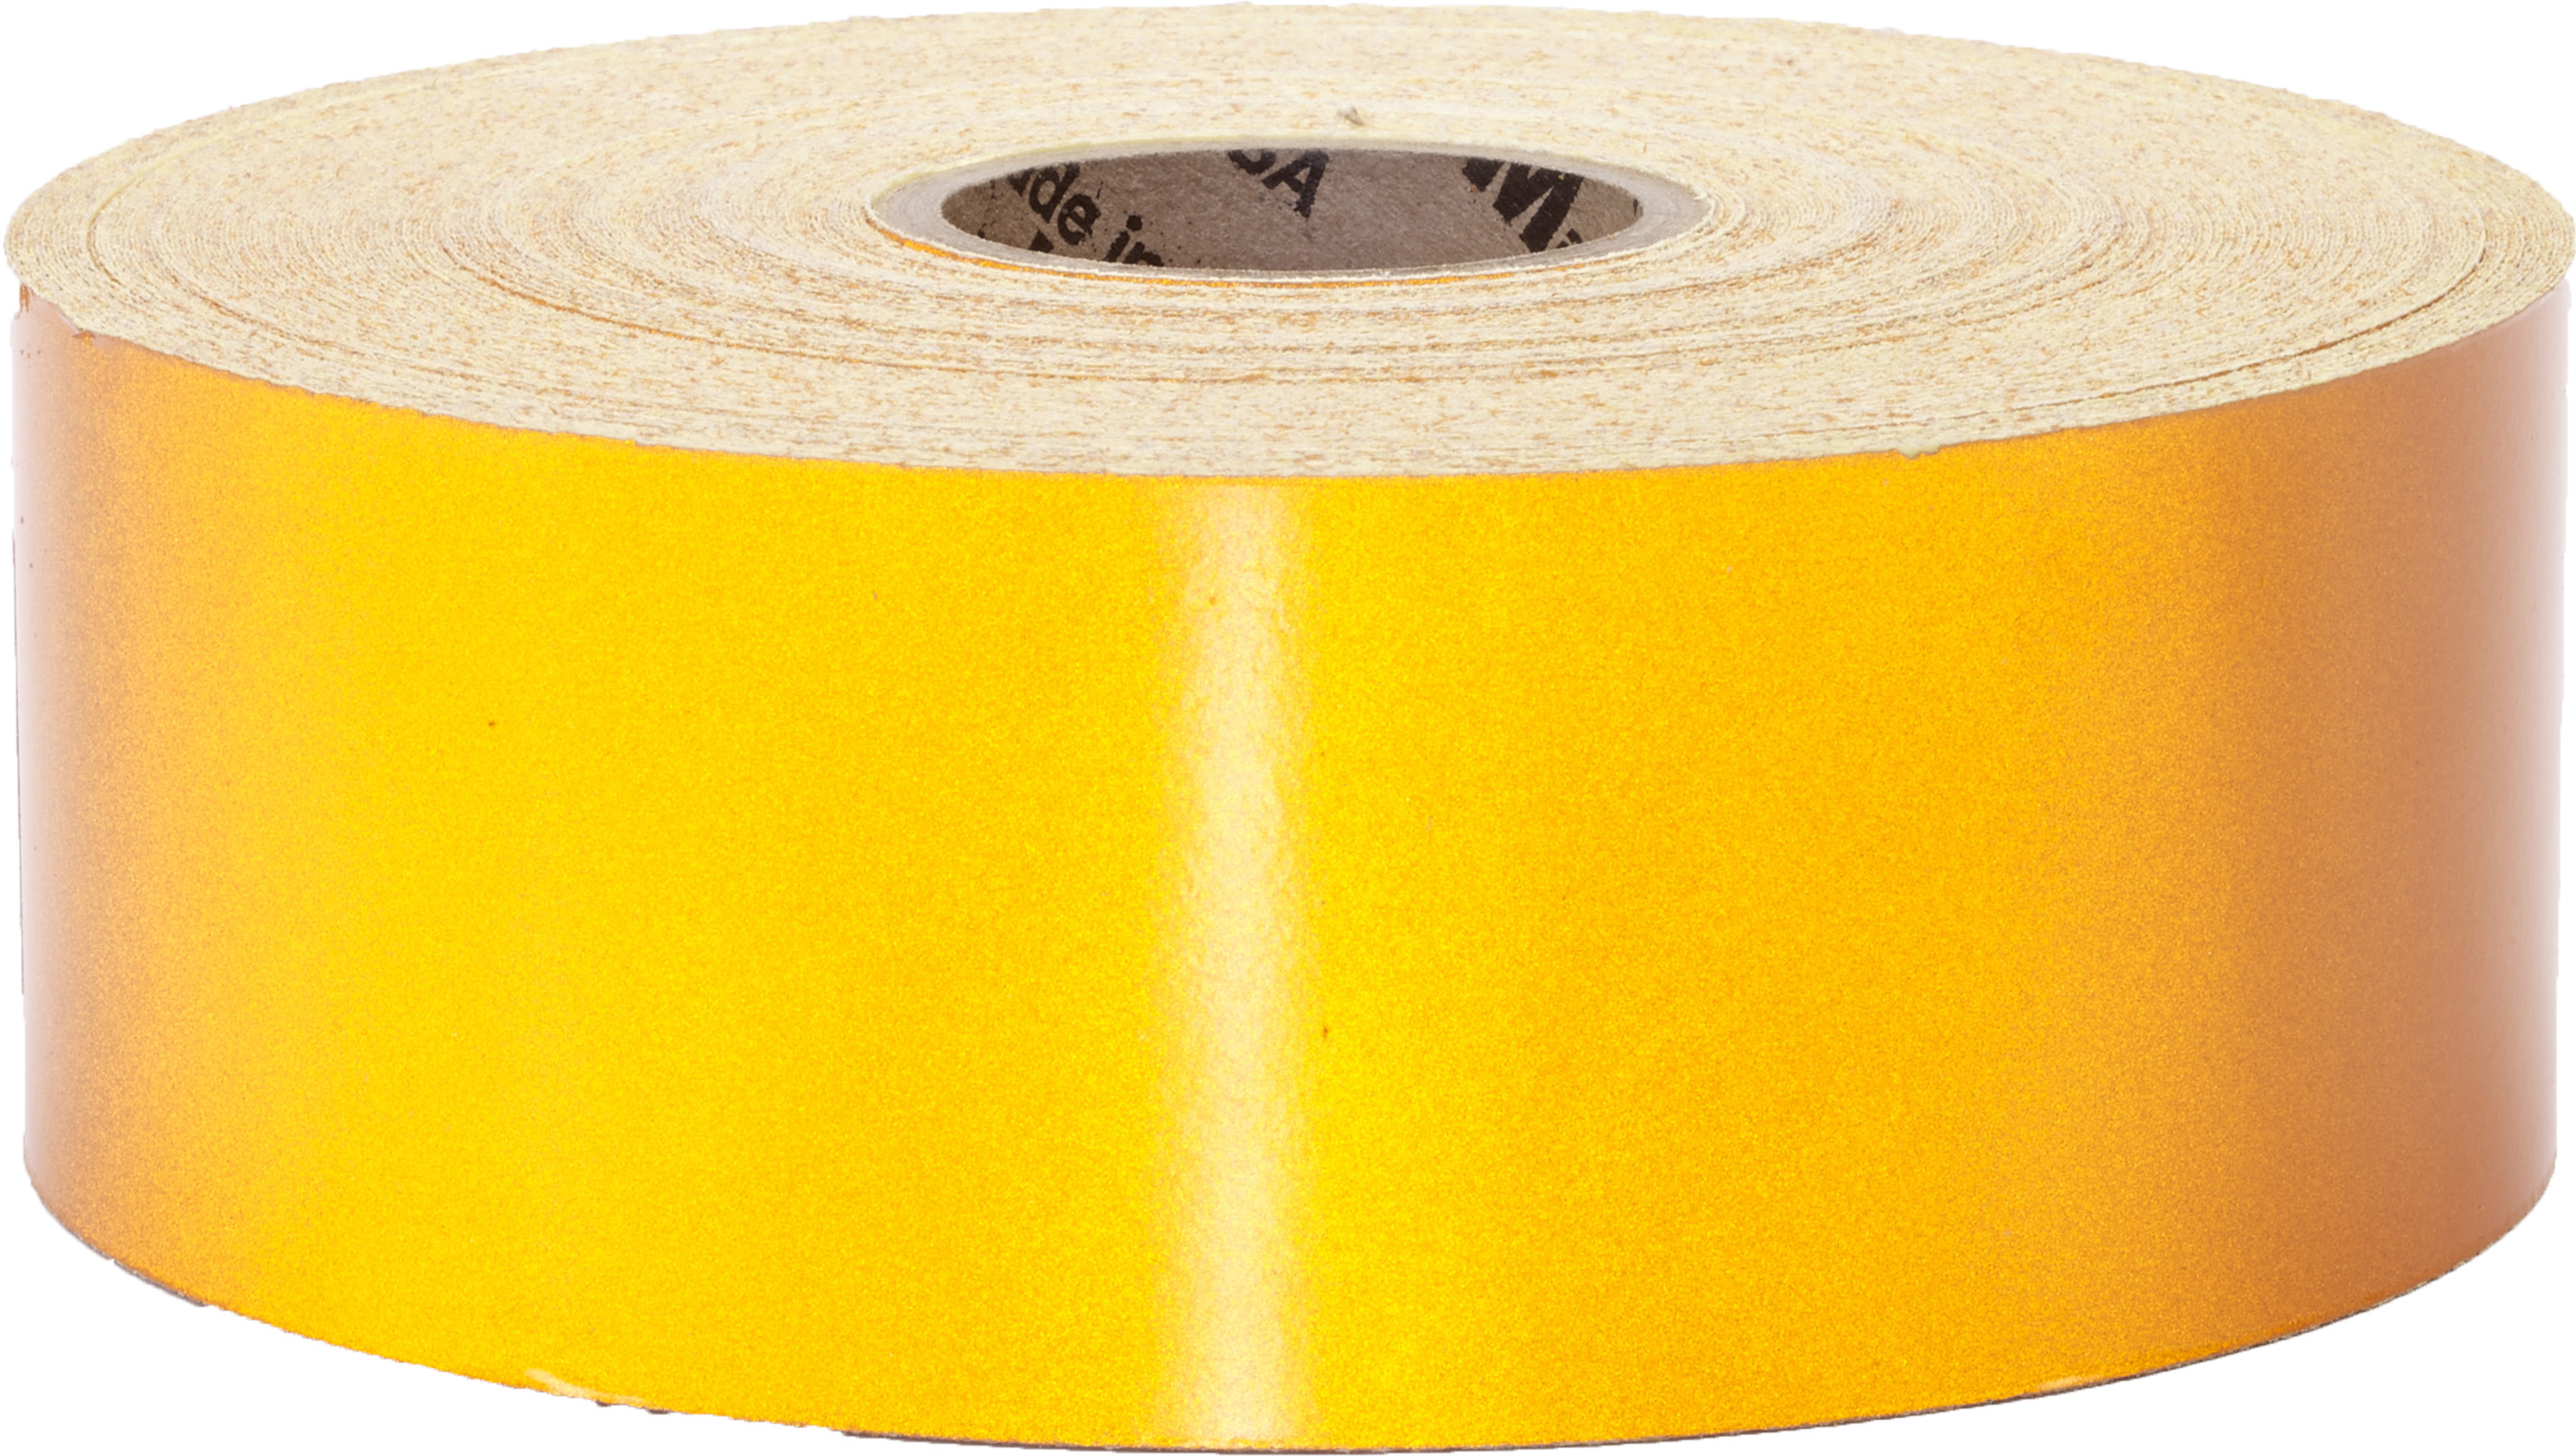 M17786-4110-1000, Pressure Sensitive Engineering Grade Retro Reflective Adhesive Tape, 1 x 10 yd., Yellow, Mutual Industries